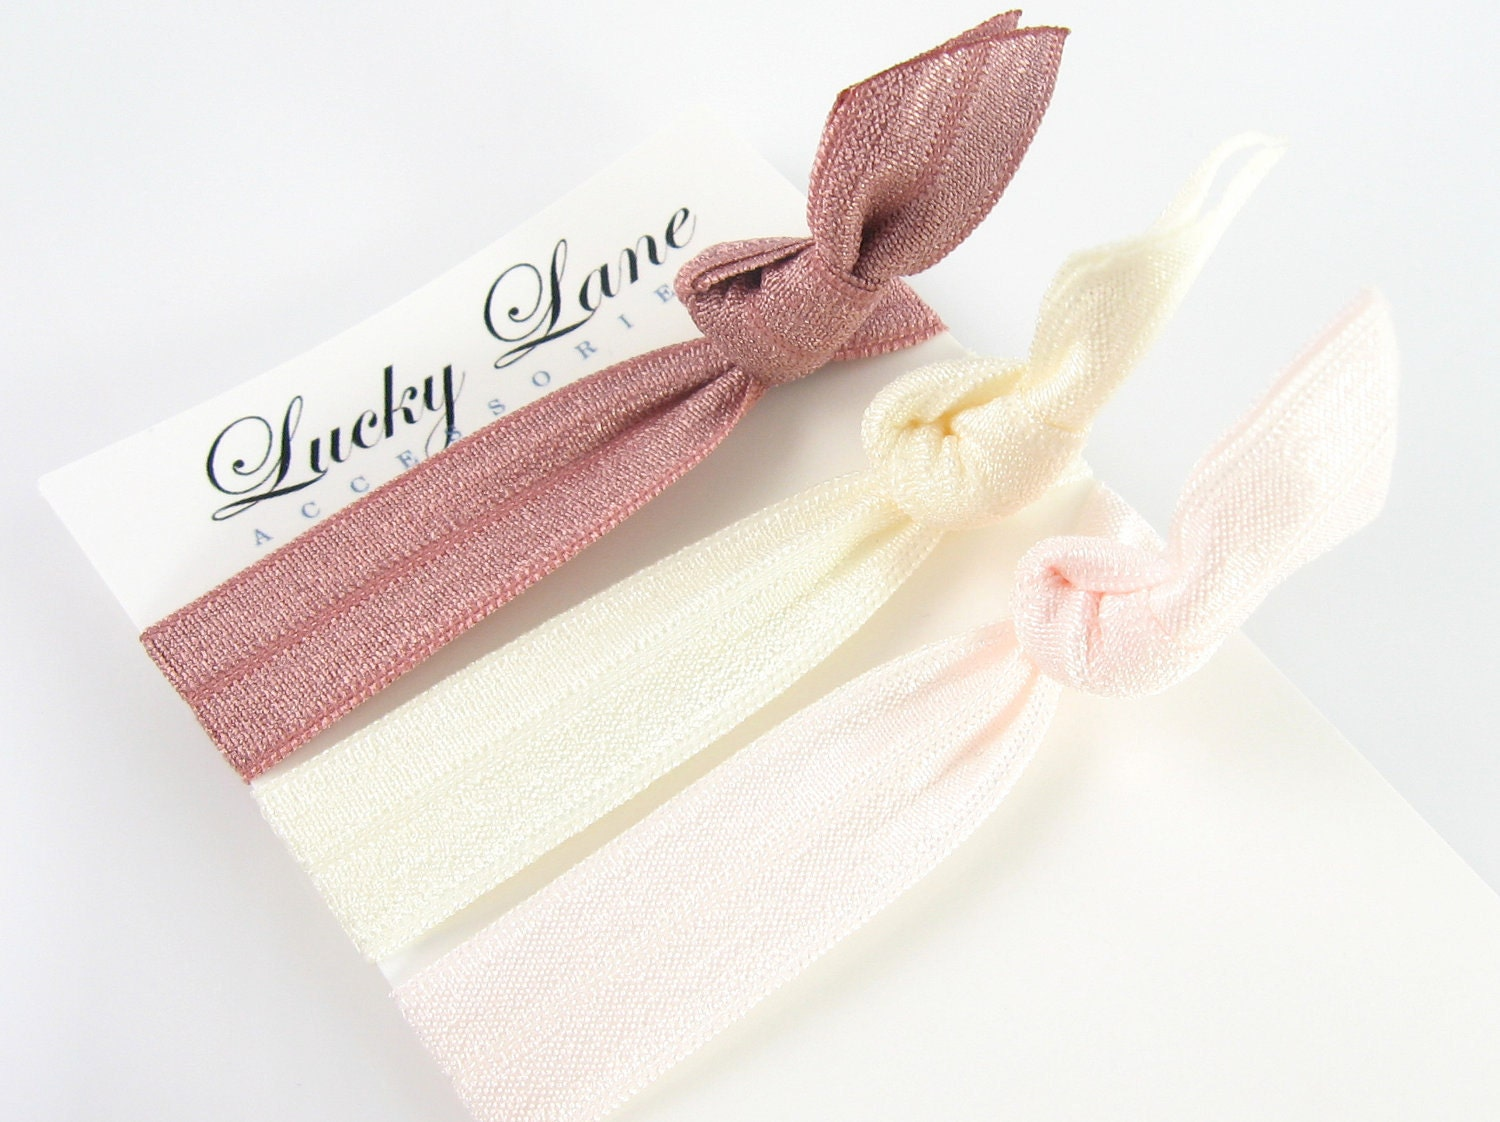 Elastic Hair Ties in Romance - Knotted No Crease Pony Tail Holder - Bracelet Trendy Accessory Mauve Ivory Cream Pale Pink - LuckyLaneAccessories